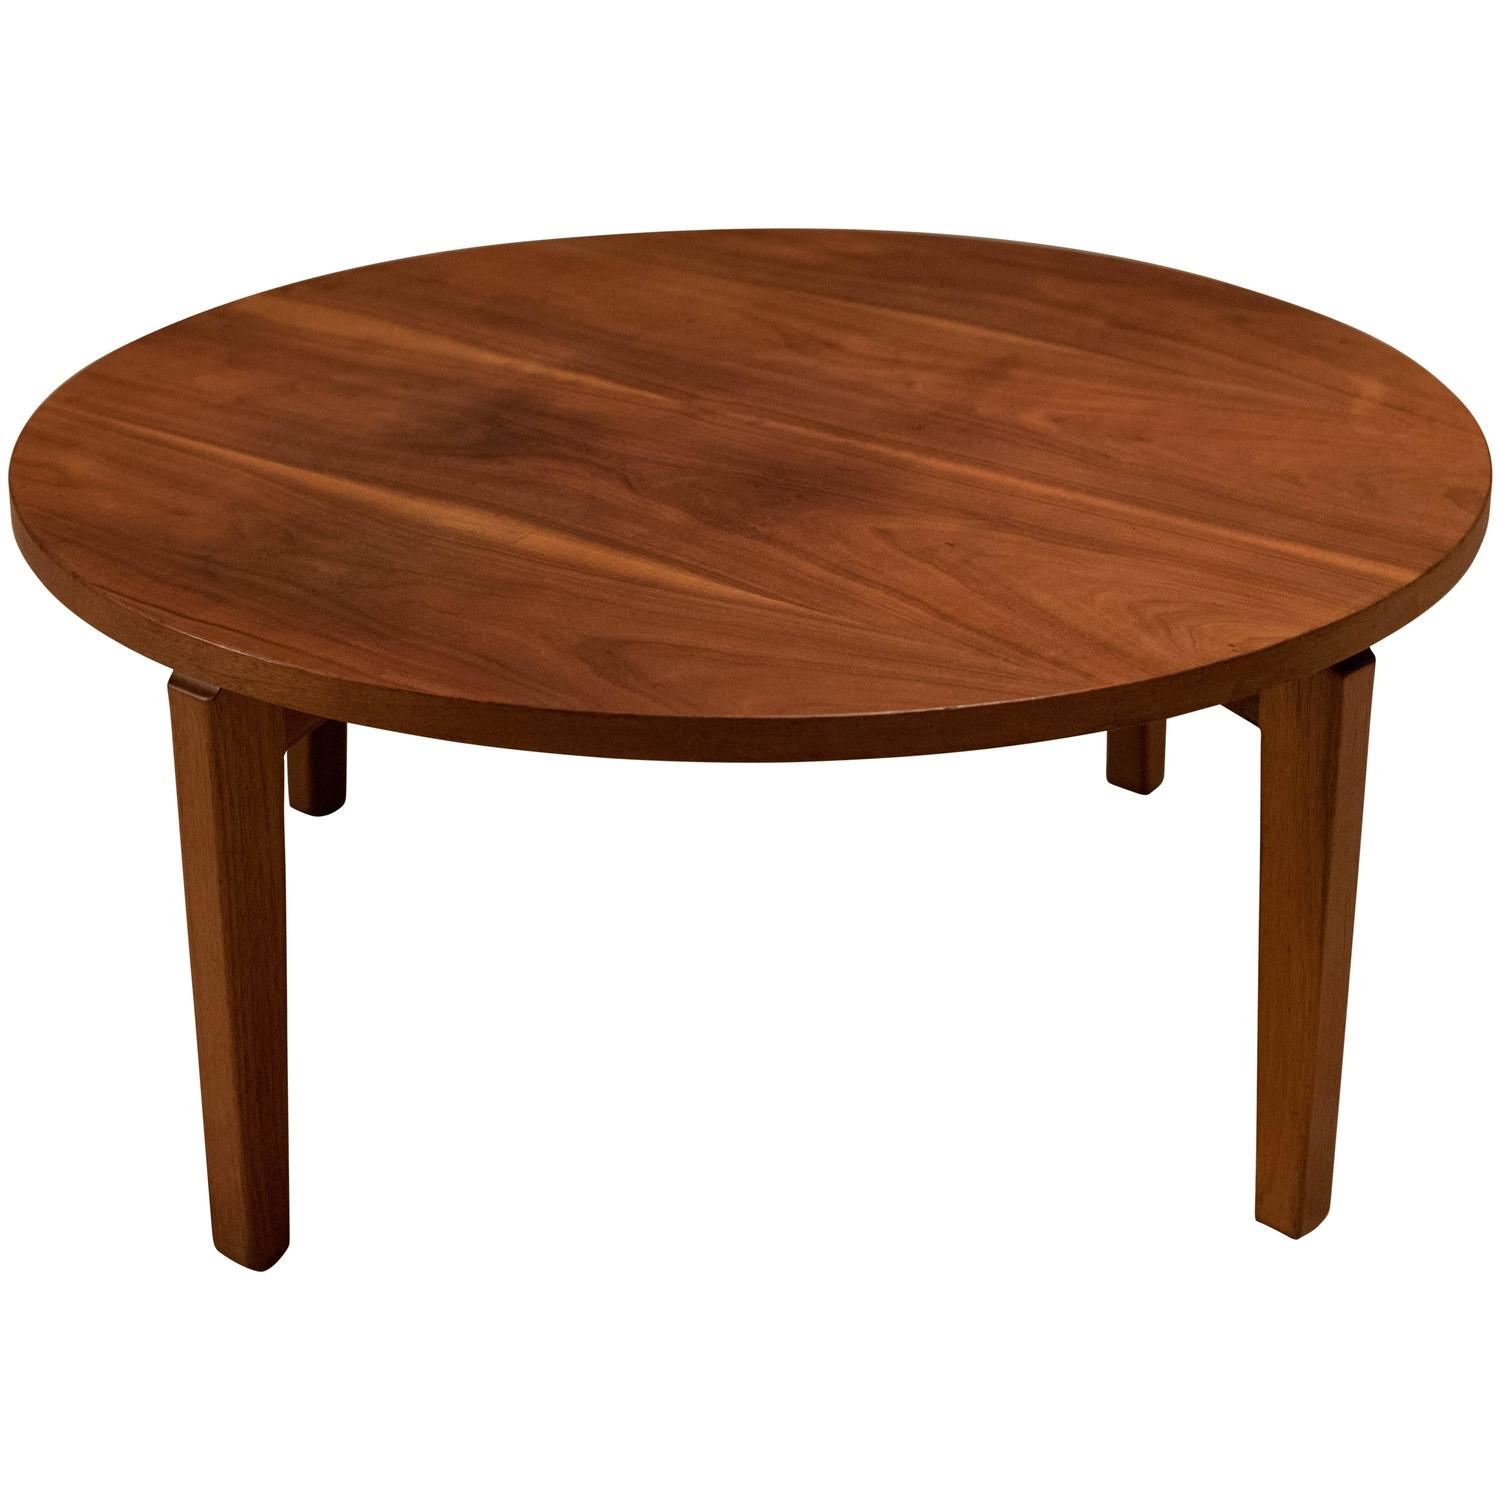 Mid-Century Walnut Round Coffee Table For Sale At 1stdibs